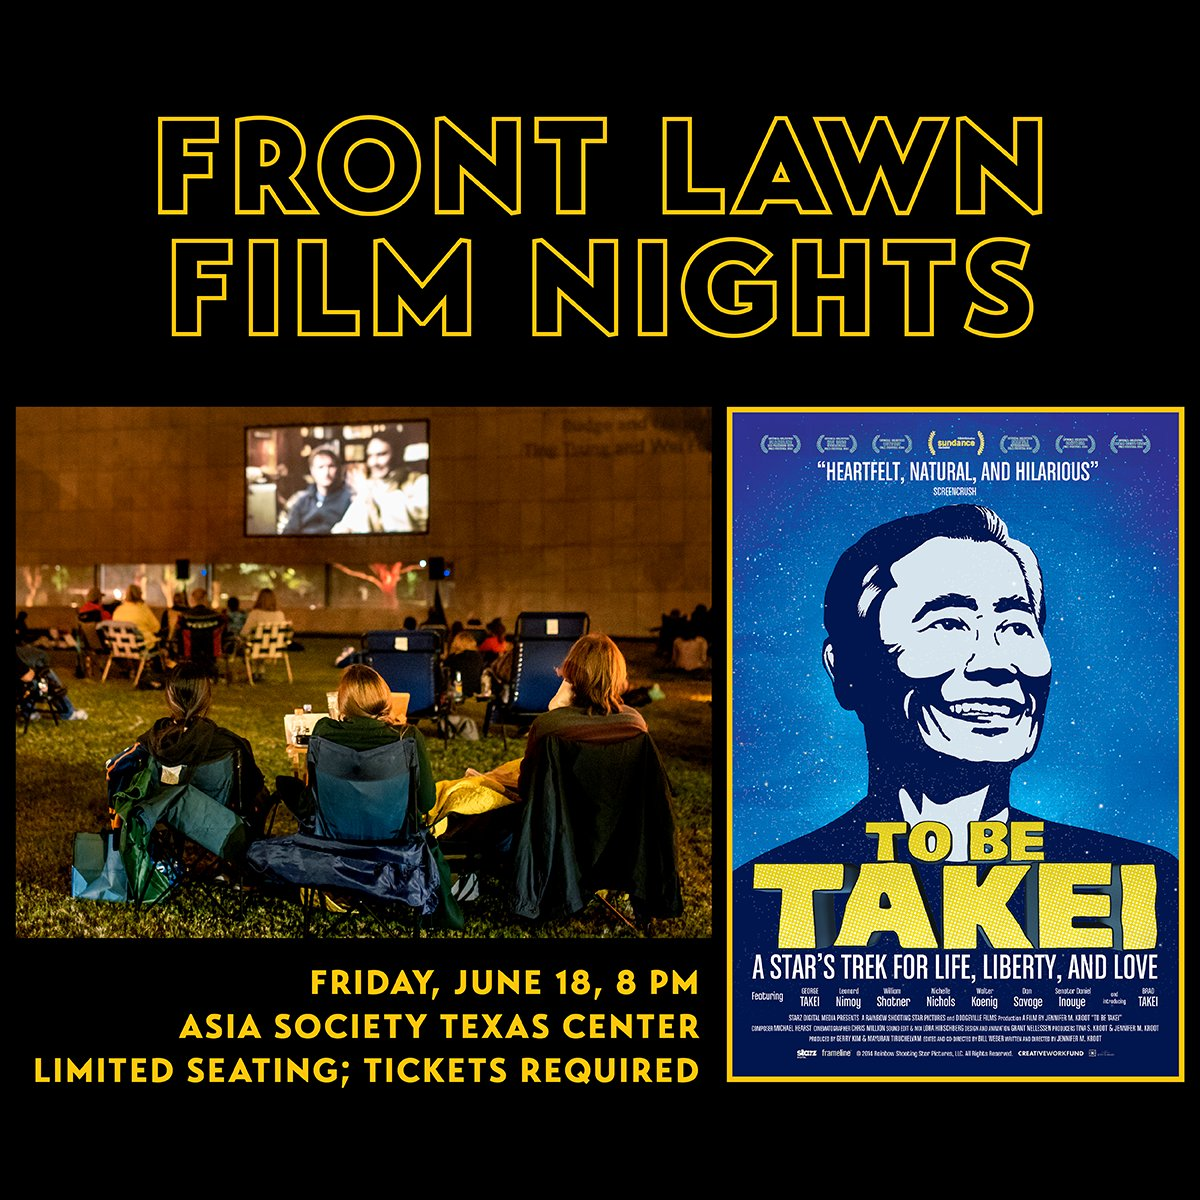 Join us this month as we close out our Front Lawn Film Nights series with 'To Be Takei' on June 18 and 'Crouching Tiger, Hidden Dragon' on June 25 — plus, complimentary beer from @karbachbrewing! Seating is limited; reserve your lawn seating pod soon! » https://t.co/gN70wop0Ai https://t.co/6KVmIqvsWj